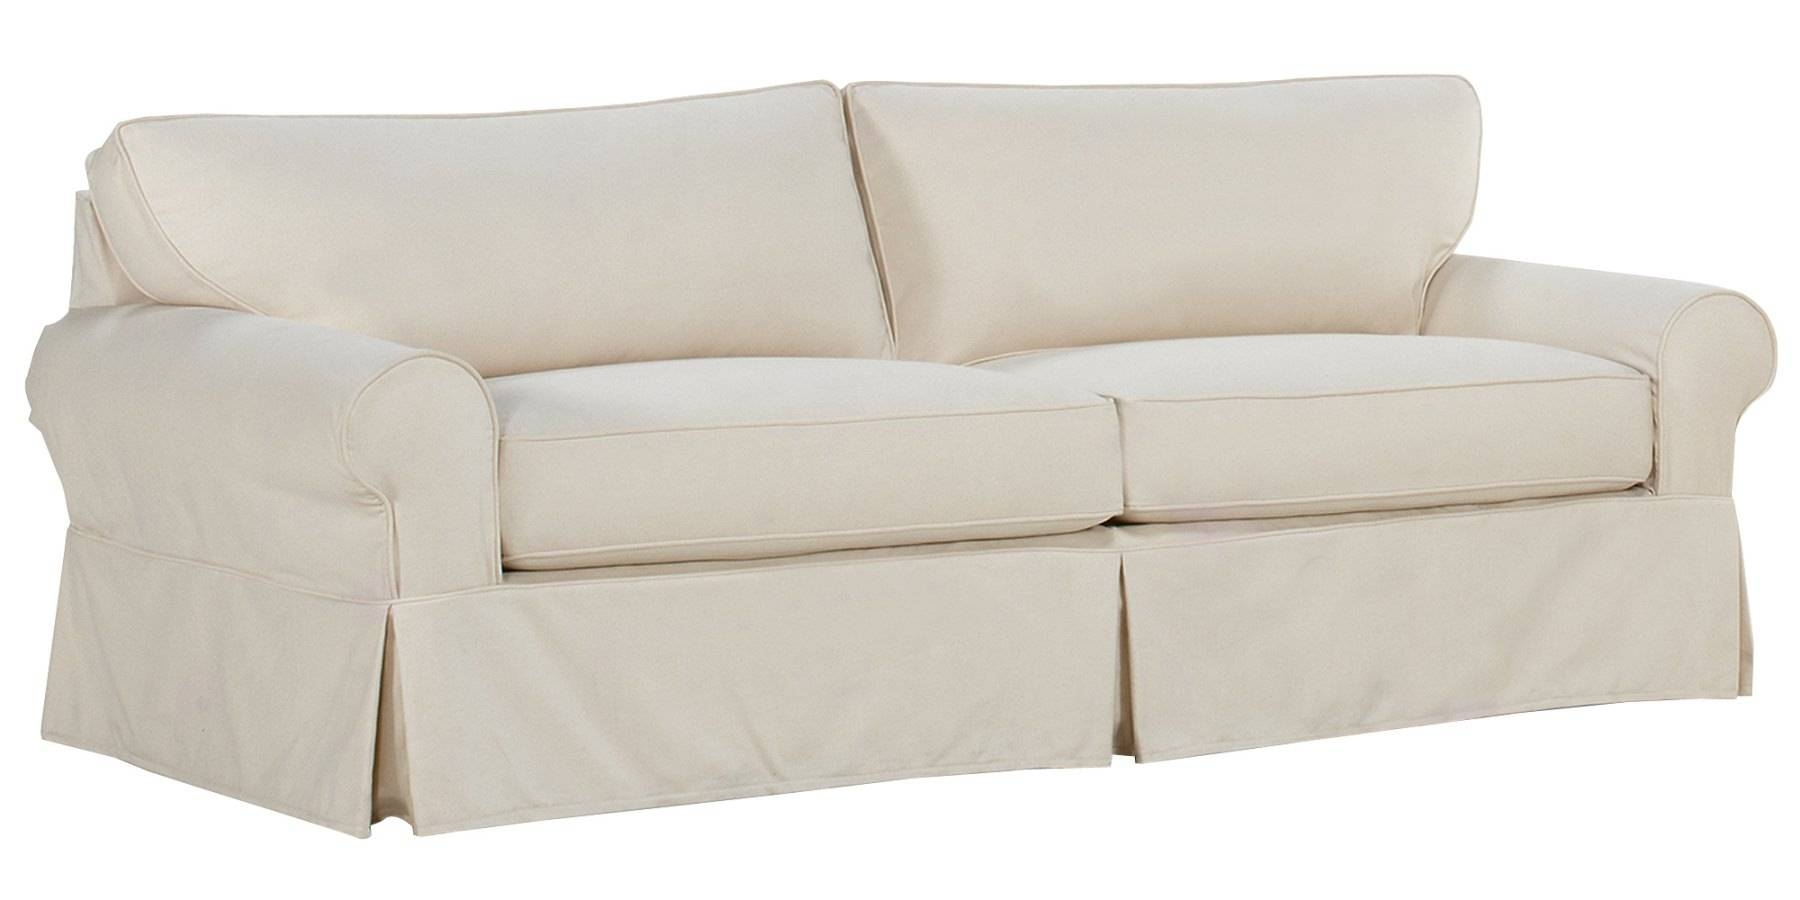 Sofas: Oversized Sofas | Sectional Couch For Sale | Oversized Sofa within Large Sofa Chairs (Image 27 of 30)